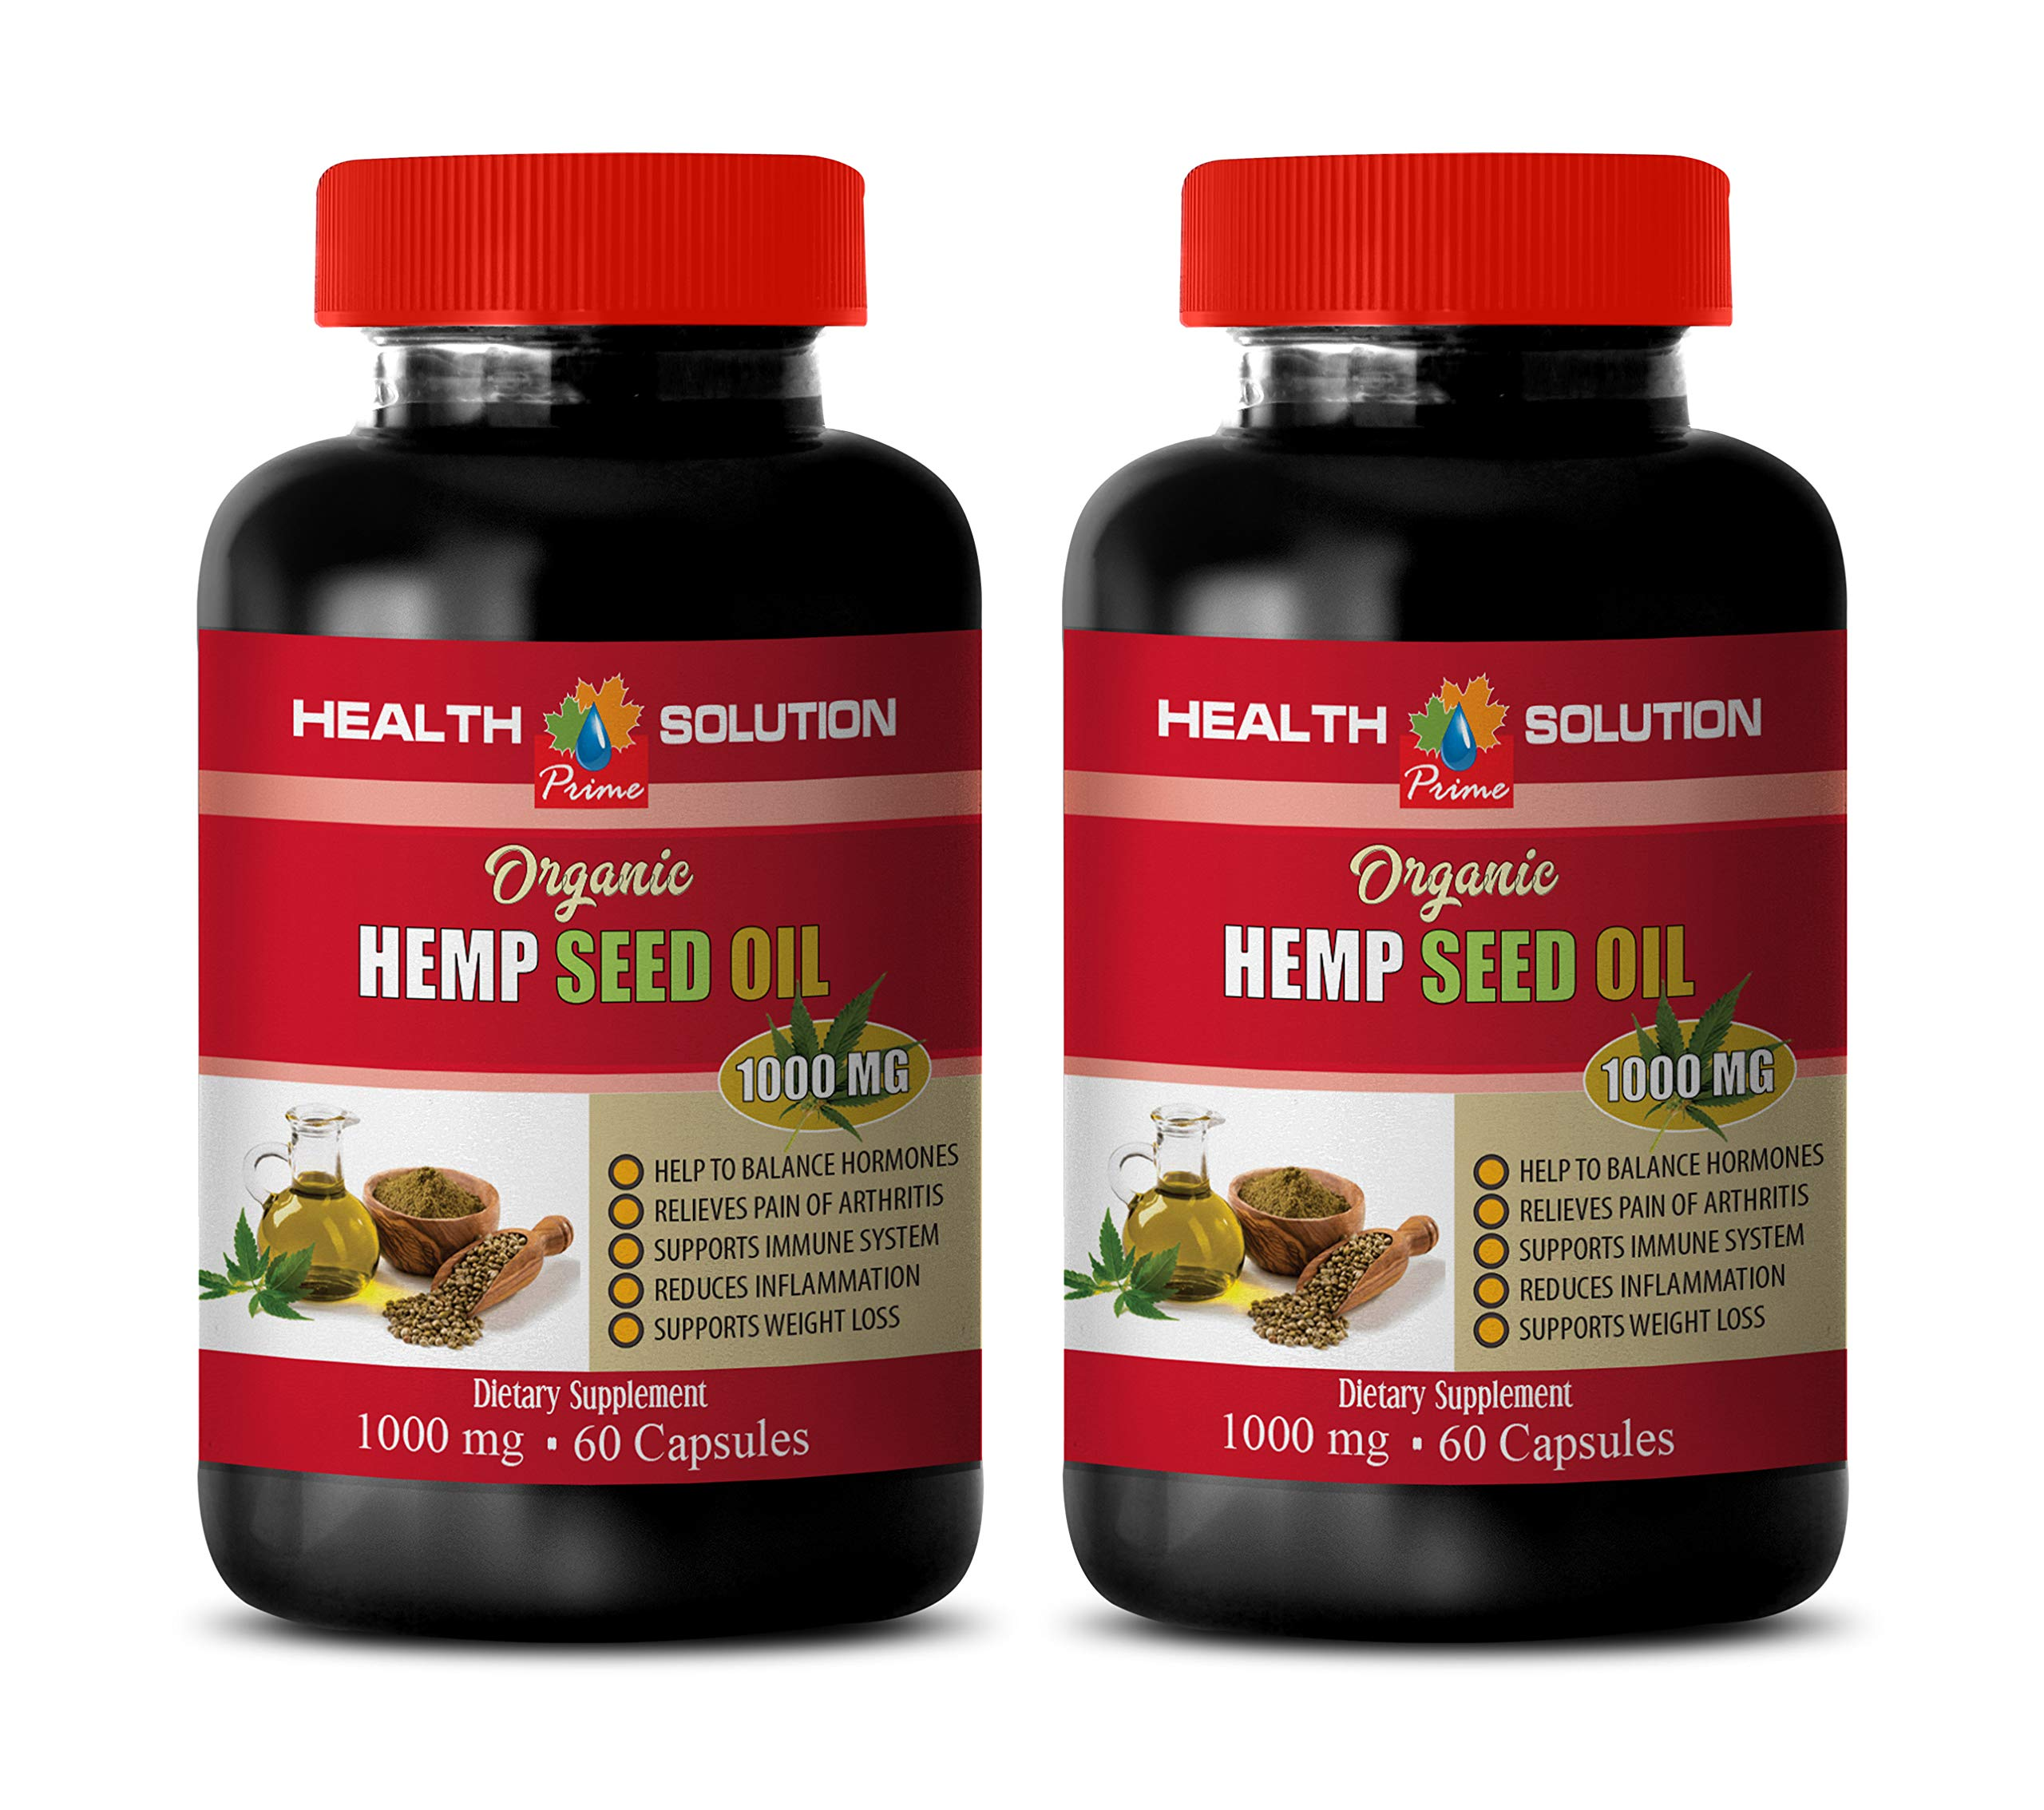 Stress Relief Natural Supplements - Hemp Seed Oil for Pain Relief - Hemp Oil for Anxiety Organic - 2 Bottles 240 Liquid Capsules